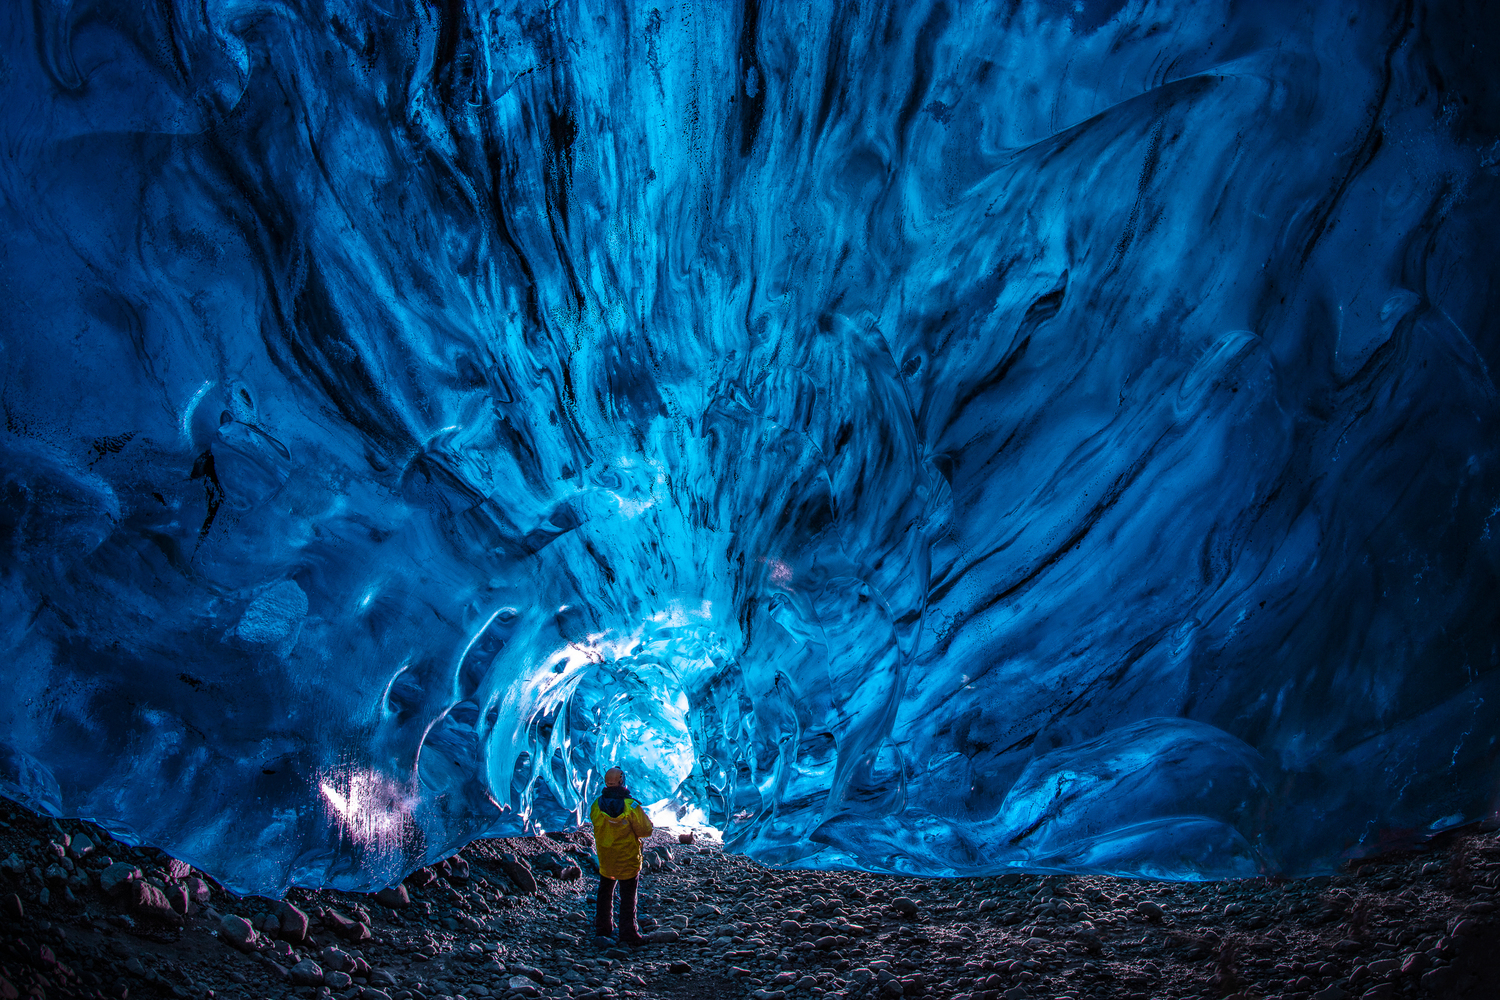 Deep in the Ice Cave